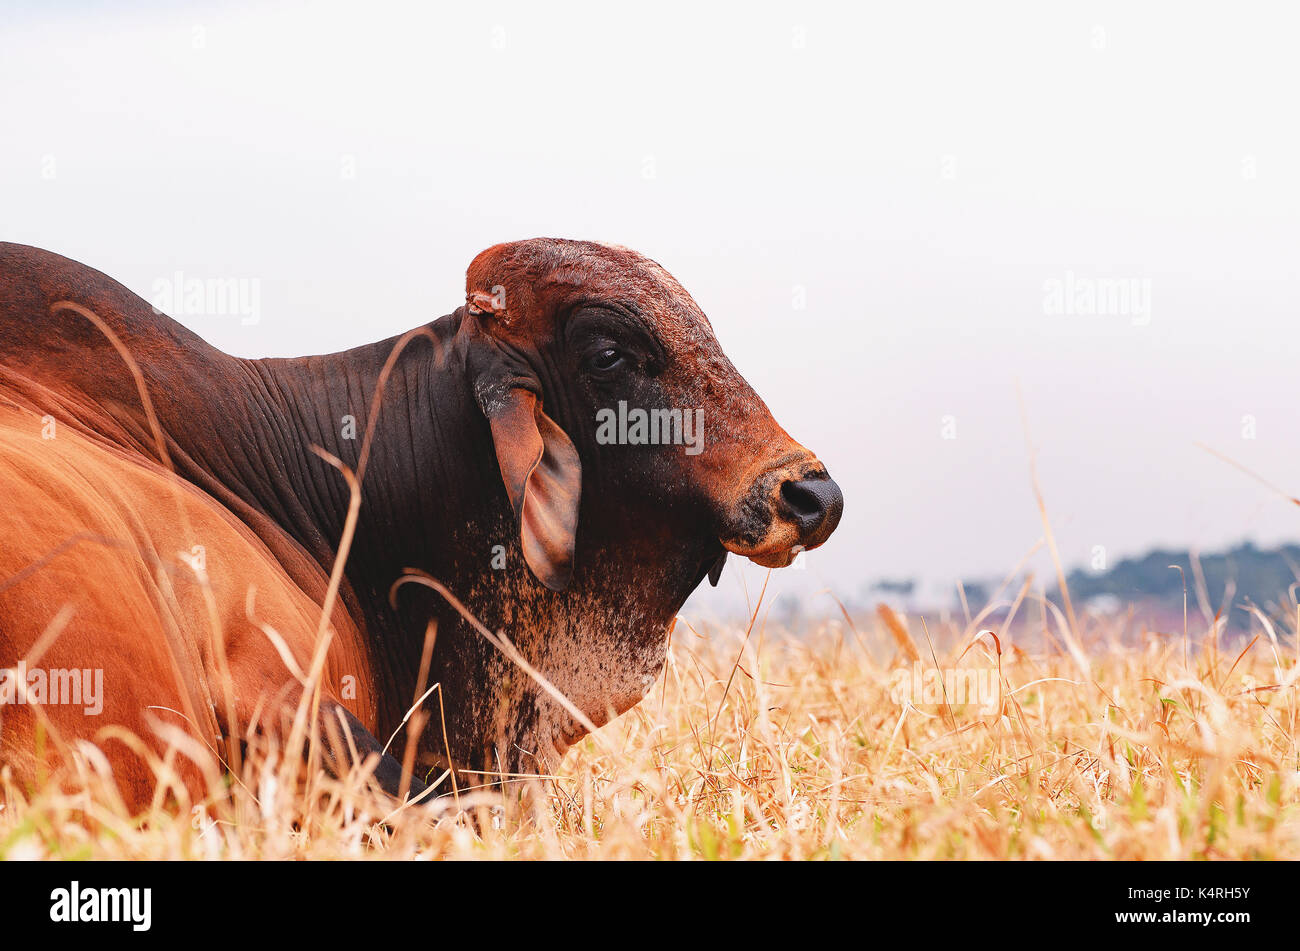 Big bull lying on the dry grass of a farm pasture. Farm animal with a big salience in his back. Reproductive animal. - Stock Image